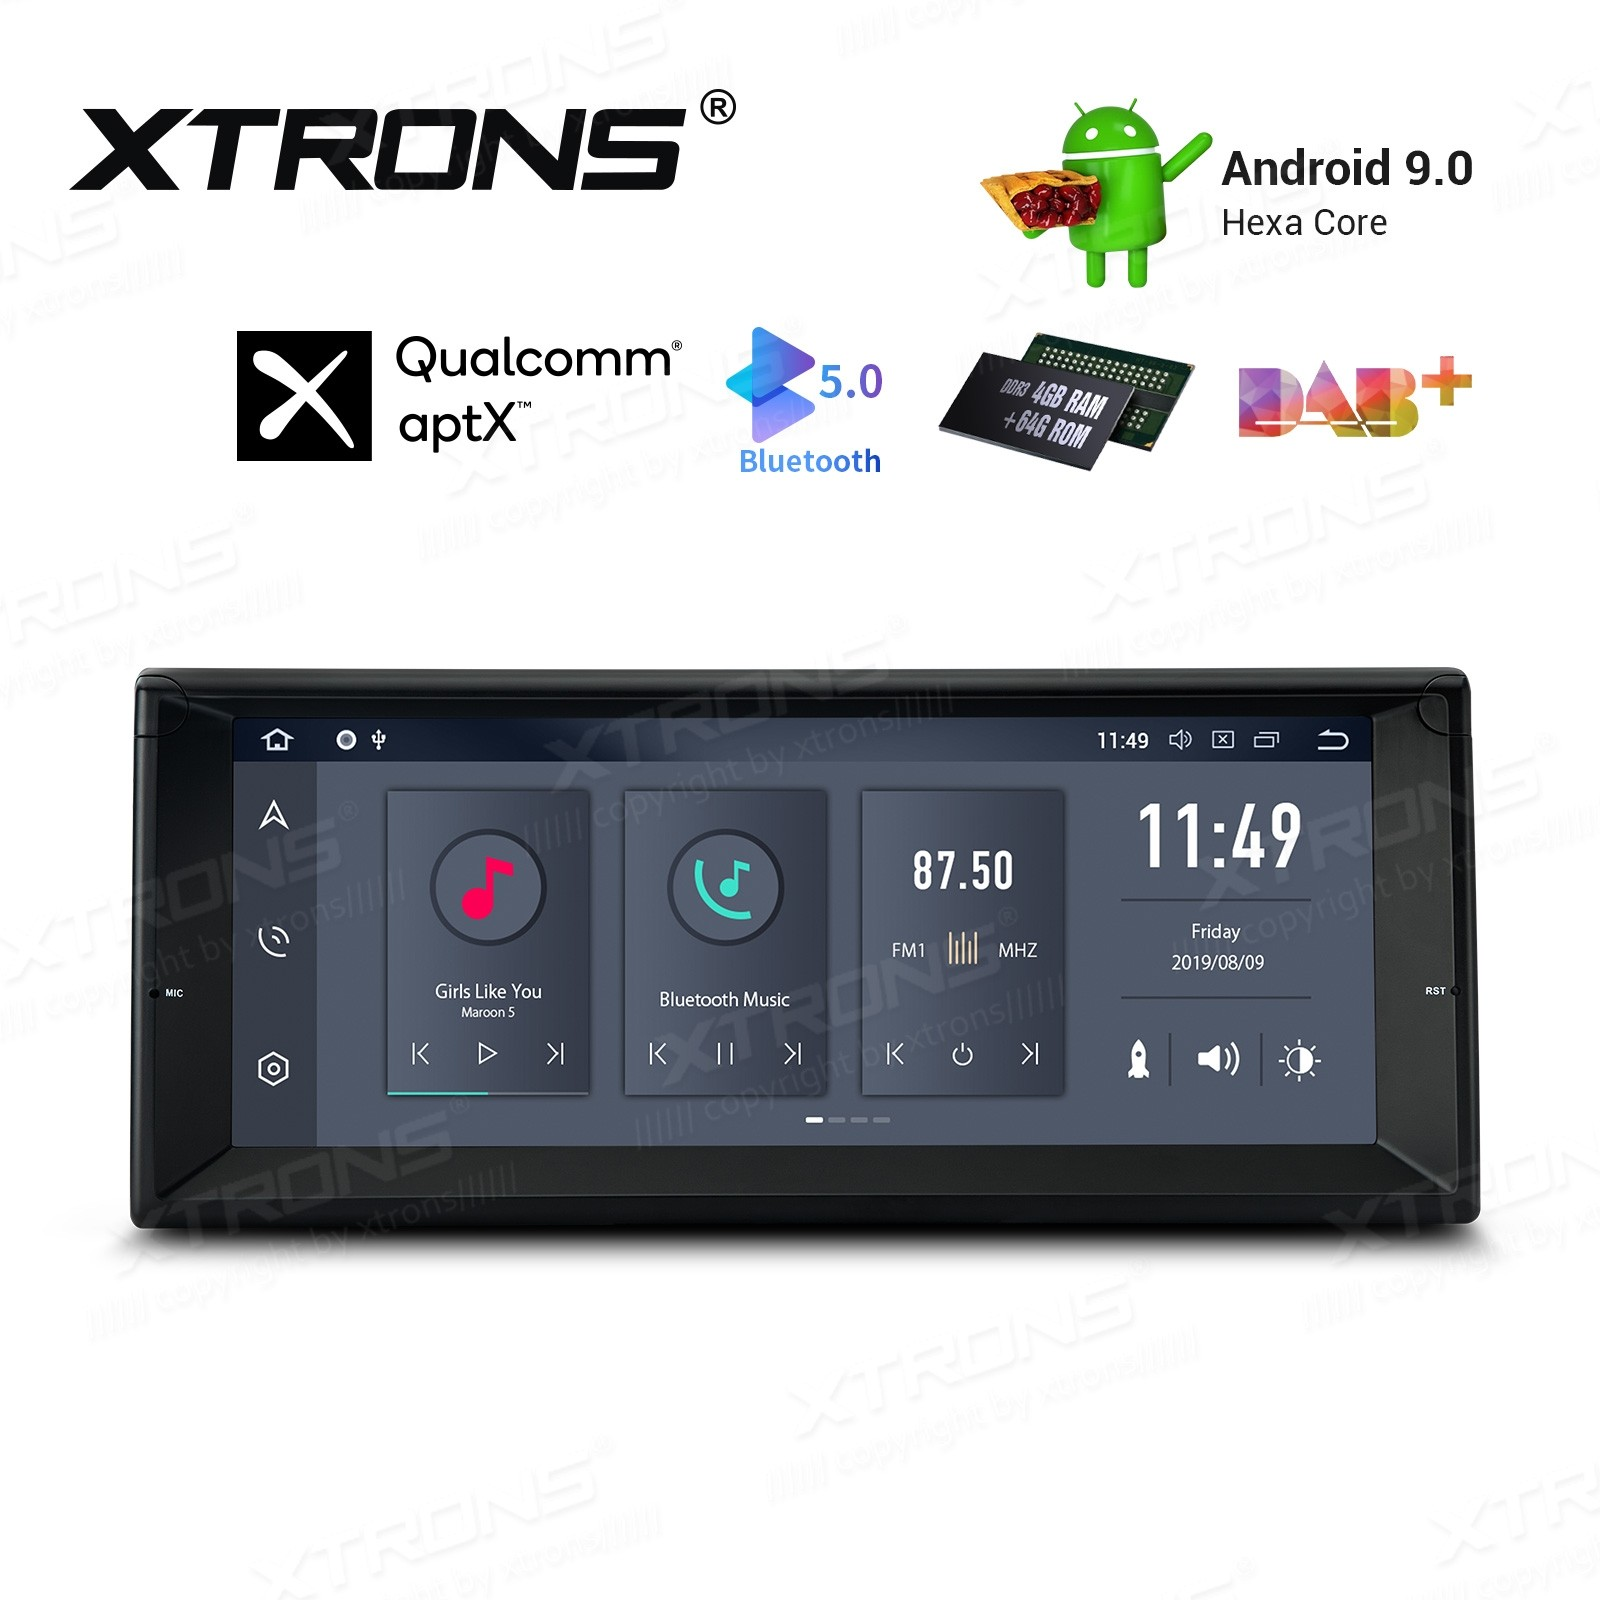 10.25 inch Android 9.0 Hexa Core 64GB ROM + 4GB RAM Car DVD Receiver Navigation System with HDMI Output Custom Fit for BMW